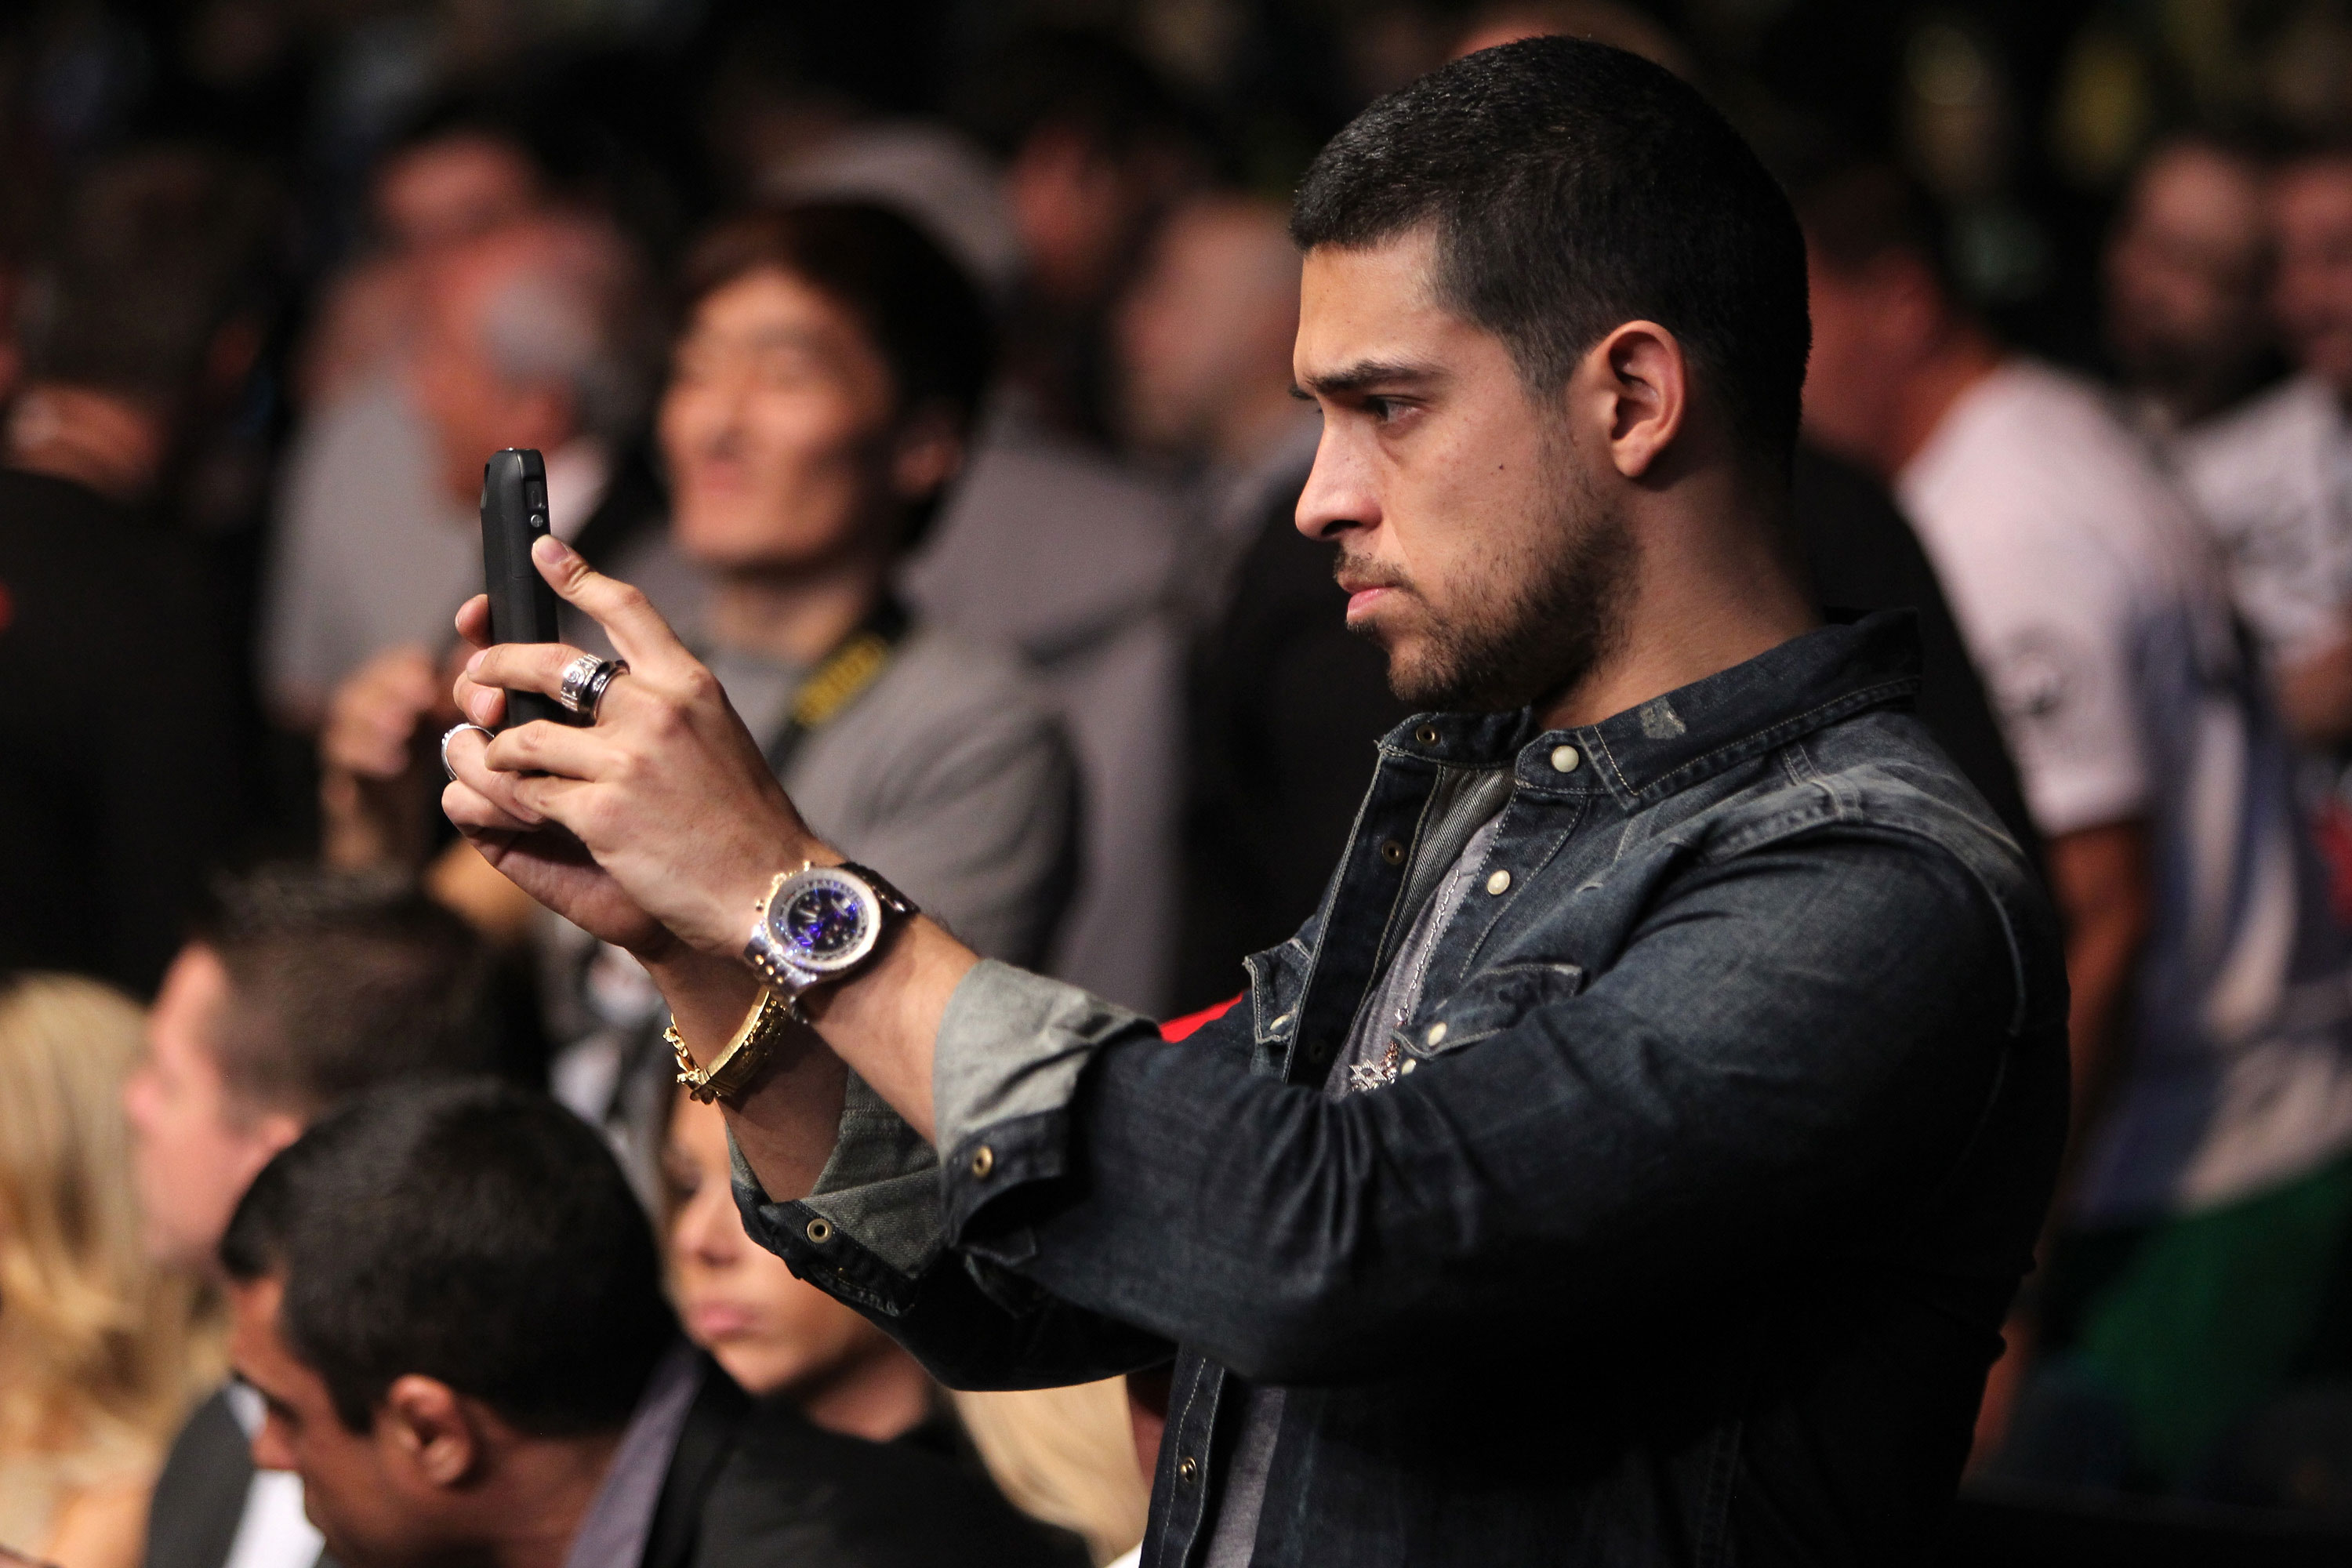 LAS VEGAS, NV - DECEMBER 30:  Wilmer Valderrama watches the action during the UFC 141 event at the MGM Grand Garden Arena on December 30, 2011 in Las Vegas, Nevada.  (Photo by Josh Hedges/Zuffa LLC/Zuffa LLC via Getty Images) *** Local Caption *** Wilmer Valderrama